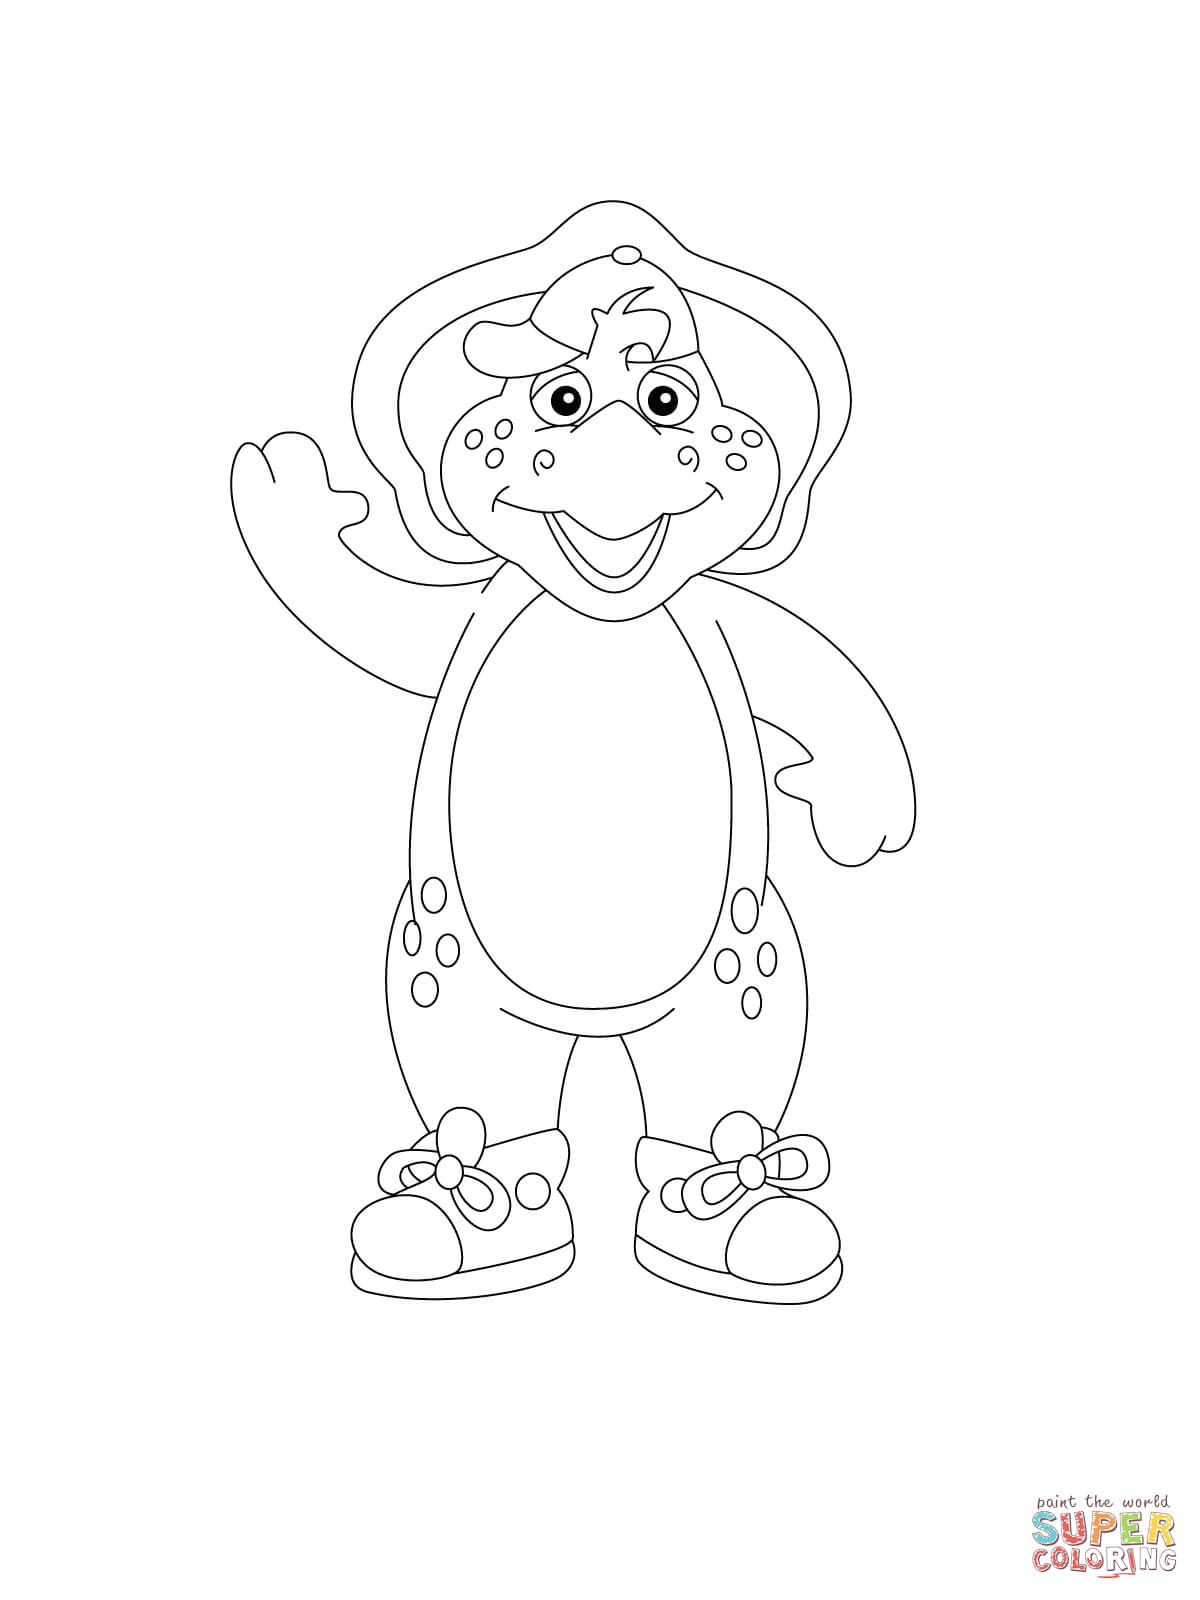 Bj Coloring Page Free Printable Coloring Pages